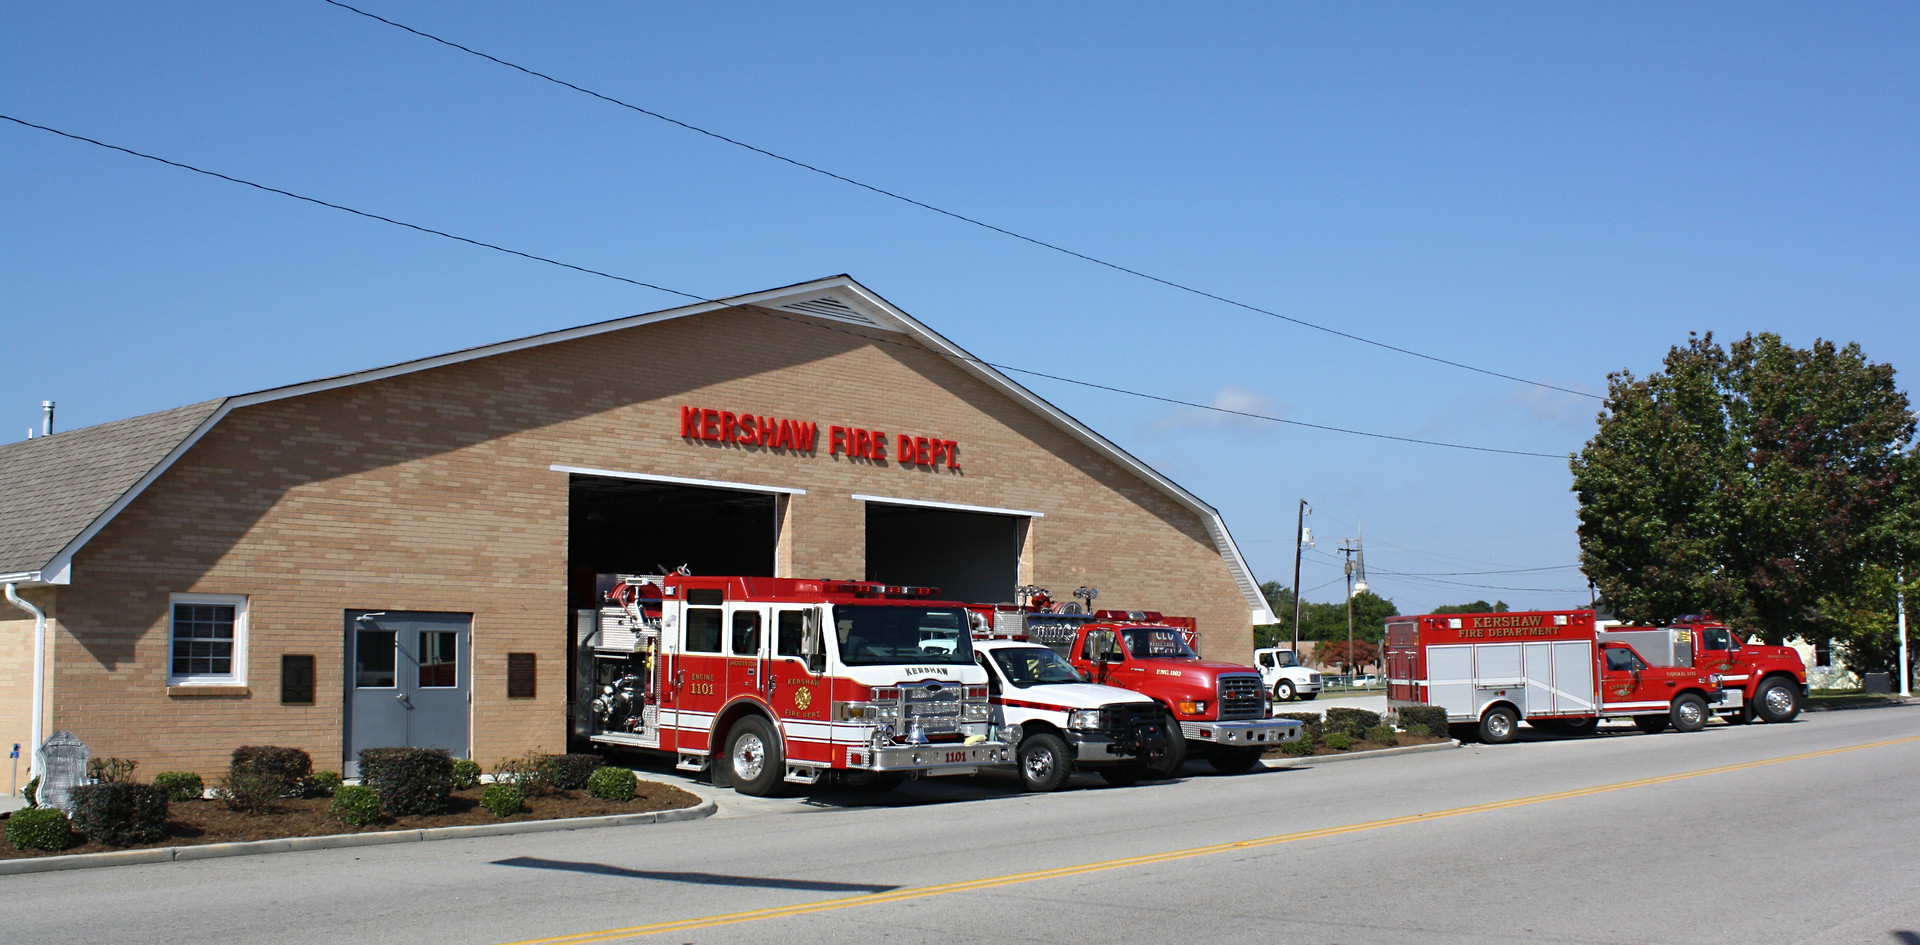 KERSHAW FIRE DEPARTMENT